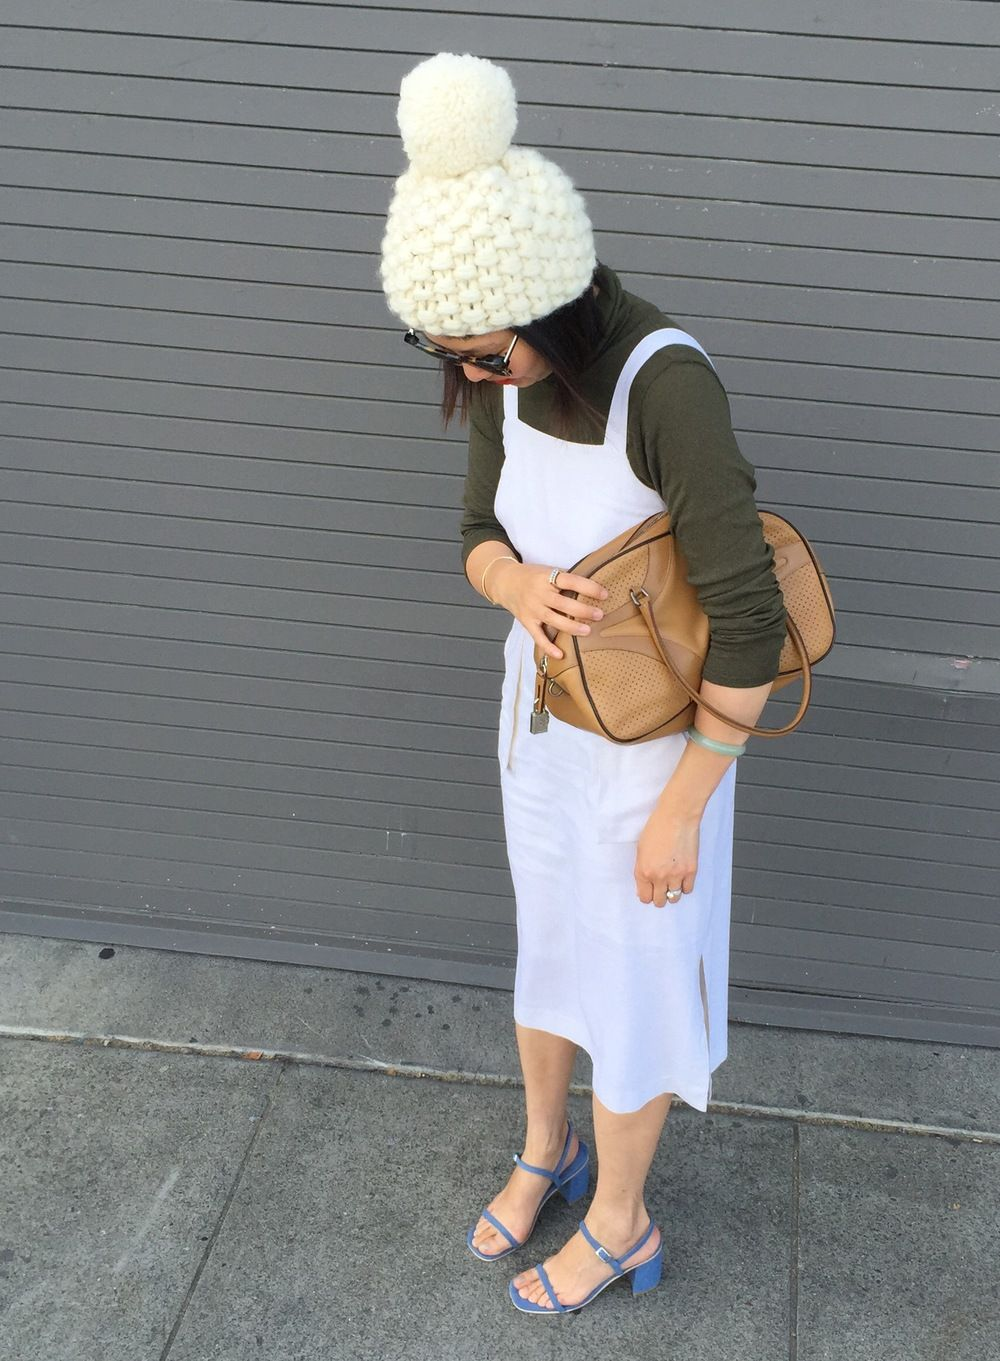 White apron meaning - Nessa Vendetta Knits Pom Beanie Objects Without Meaning Turtleneck Diarte Apron Dress Rafa